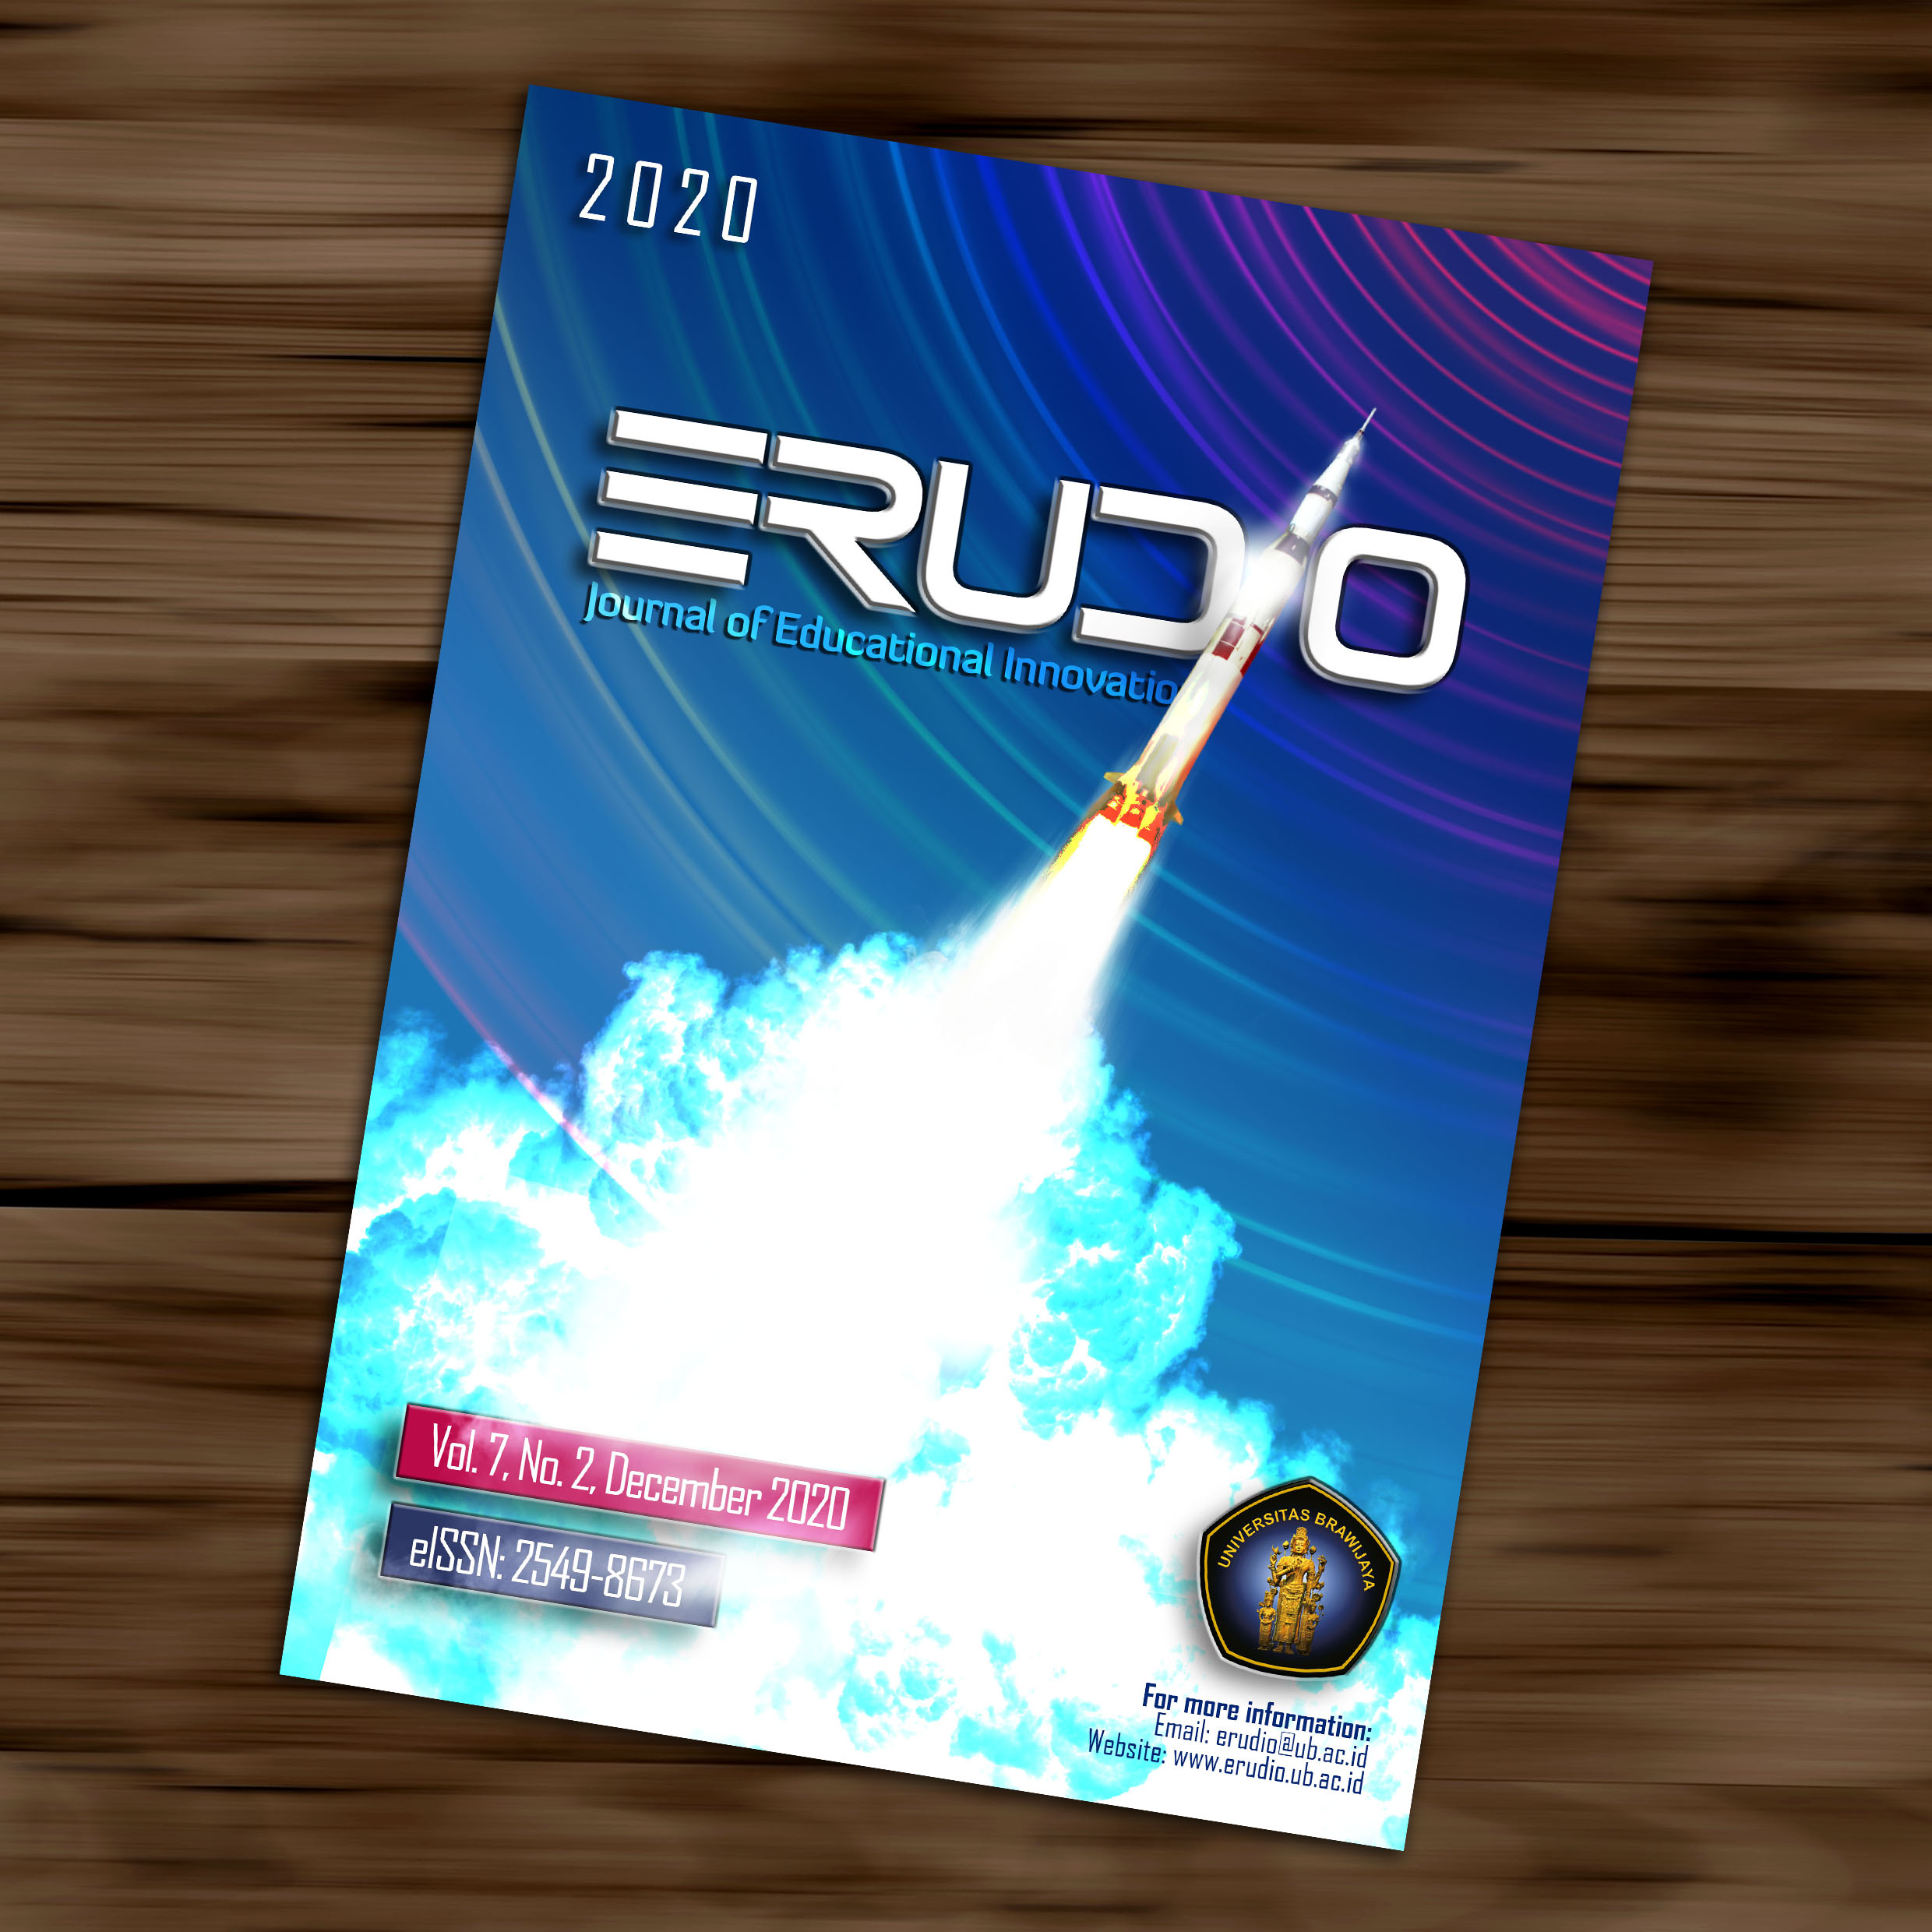 Erudio vol 7 no 2 December 2020